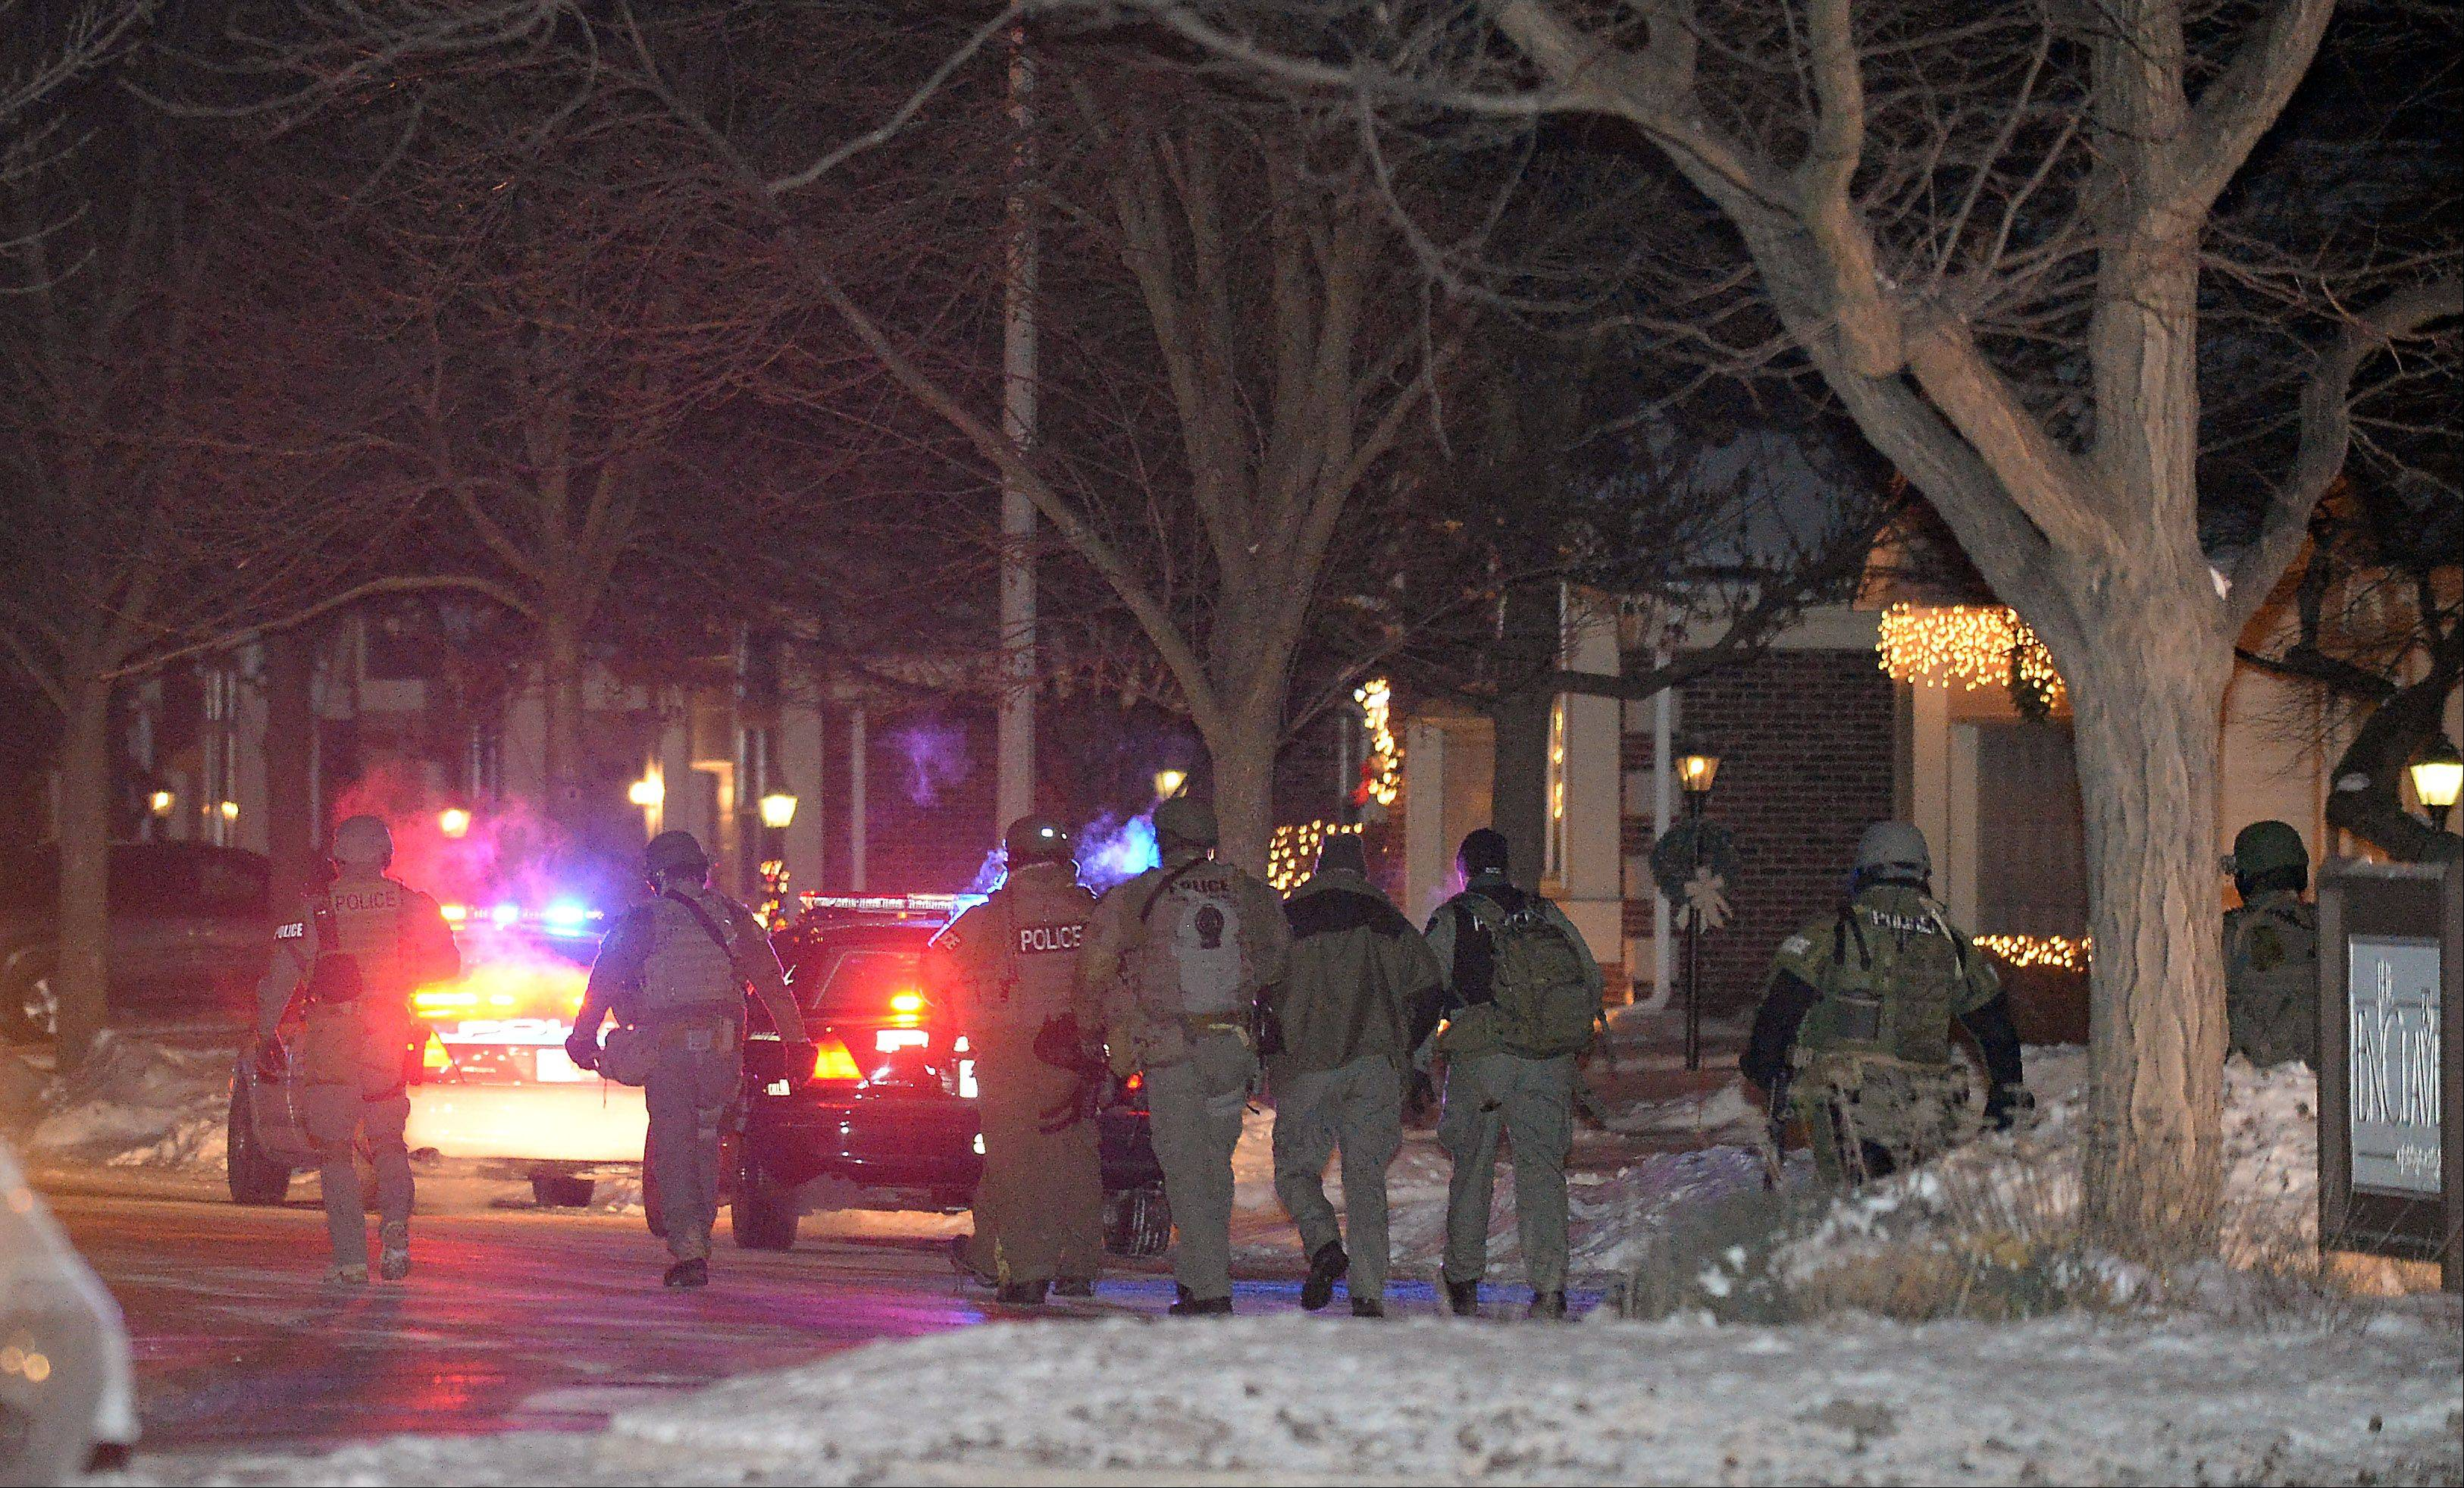 Police and tactical officers respond Thursday nightat the scene where an officer was shot.